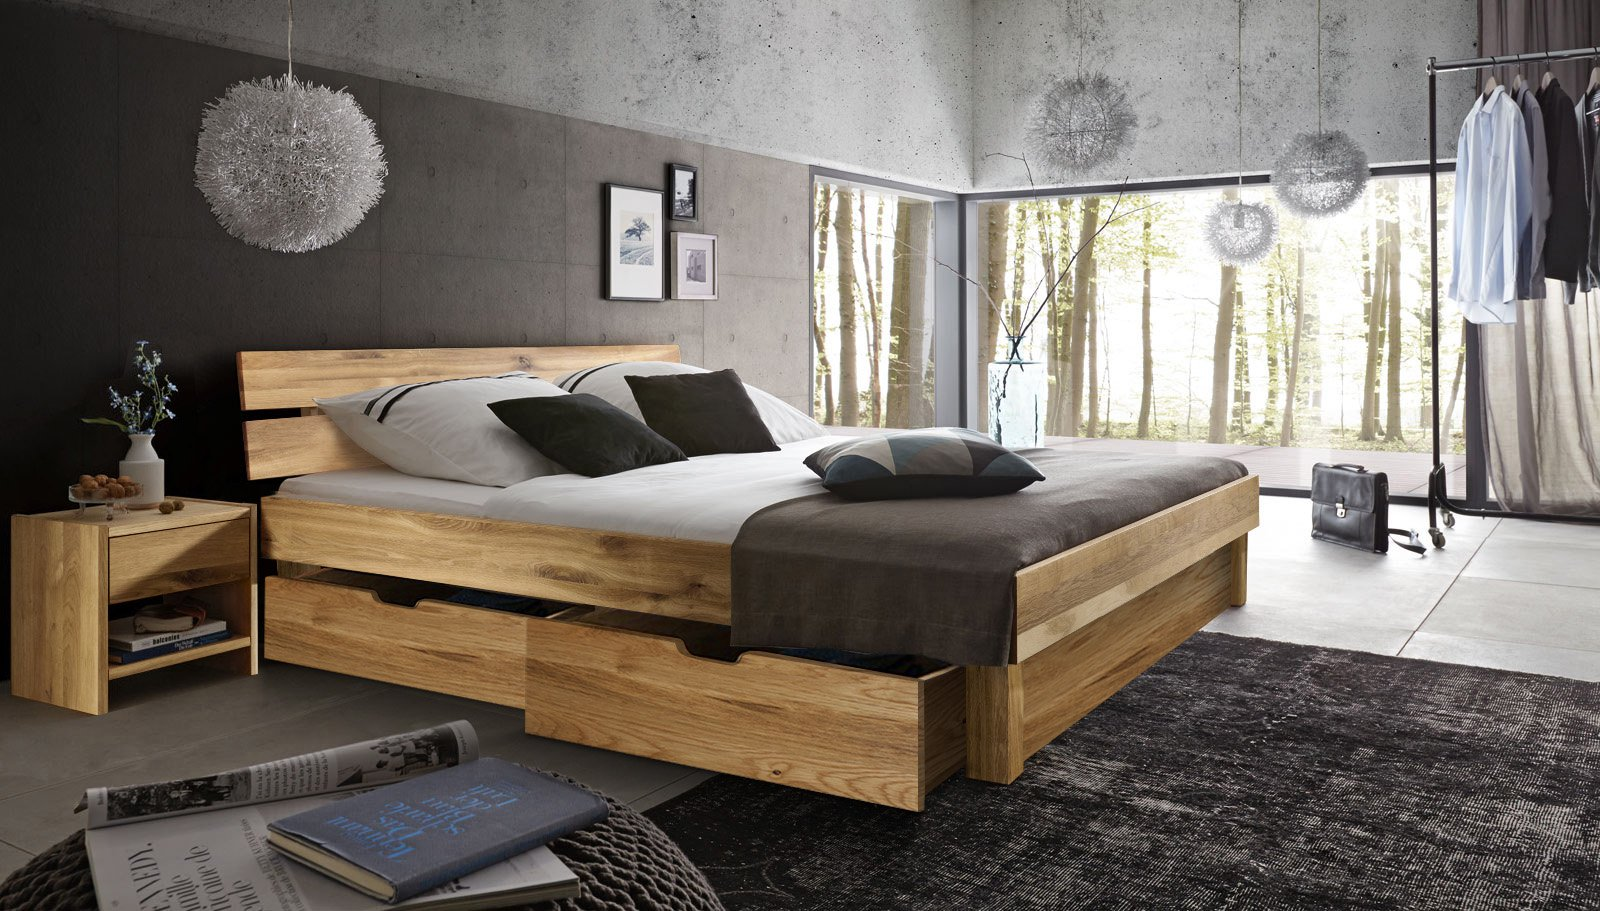 180x200 mit bettkasten latest large size of kasten bett x bettkasten selber bauen kastenbett. Black Bedroom Furniture Sets. Home Design Ideas